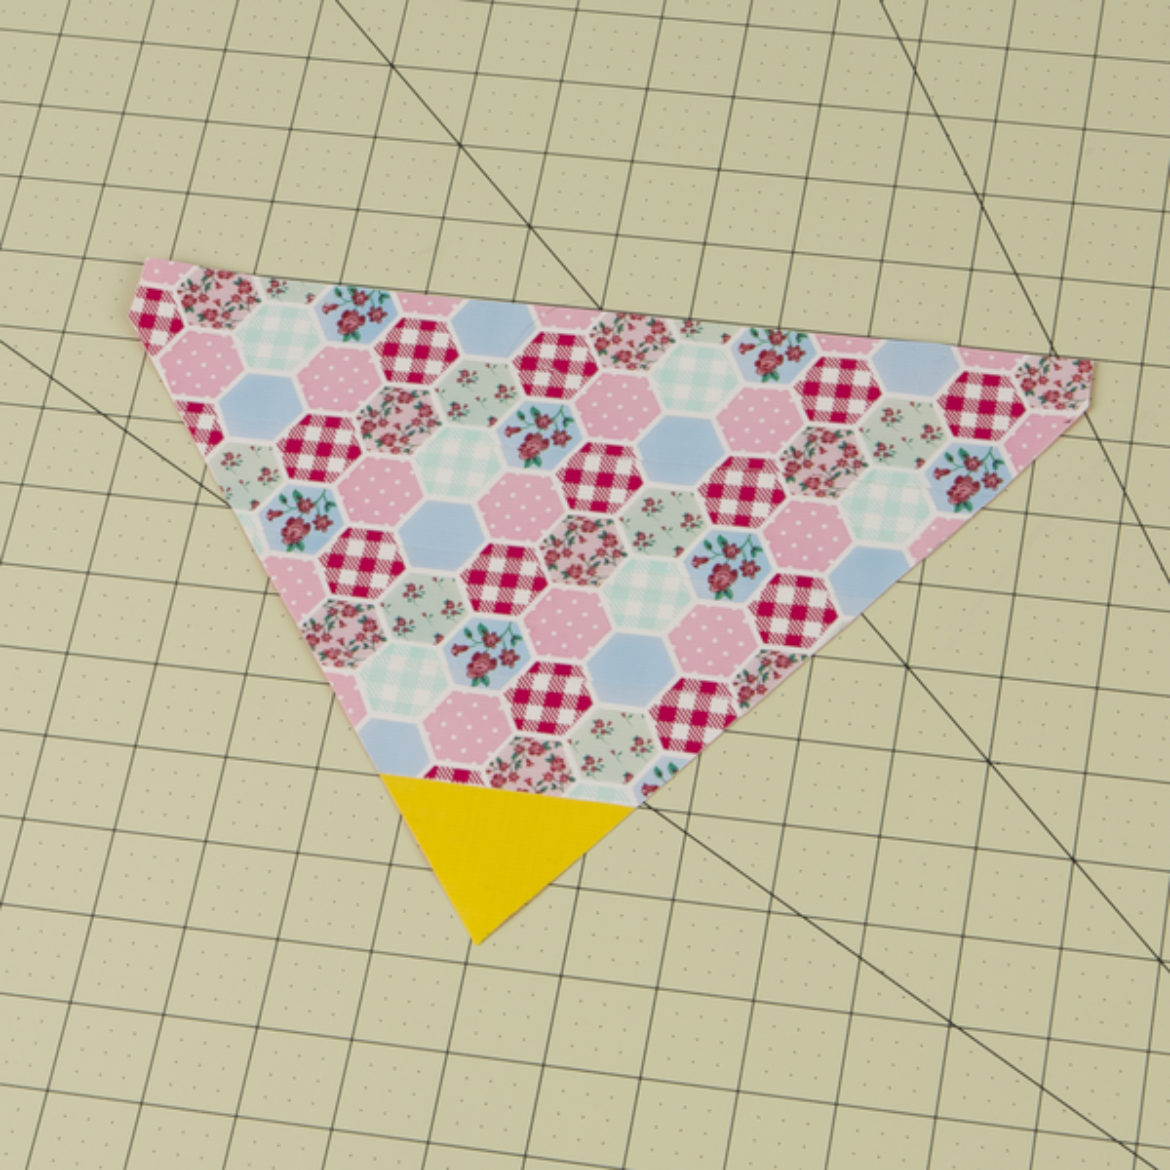 fabric from the prevoius step cut into a triangle so that there is a small triangle of yellow tape at the bottom